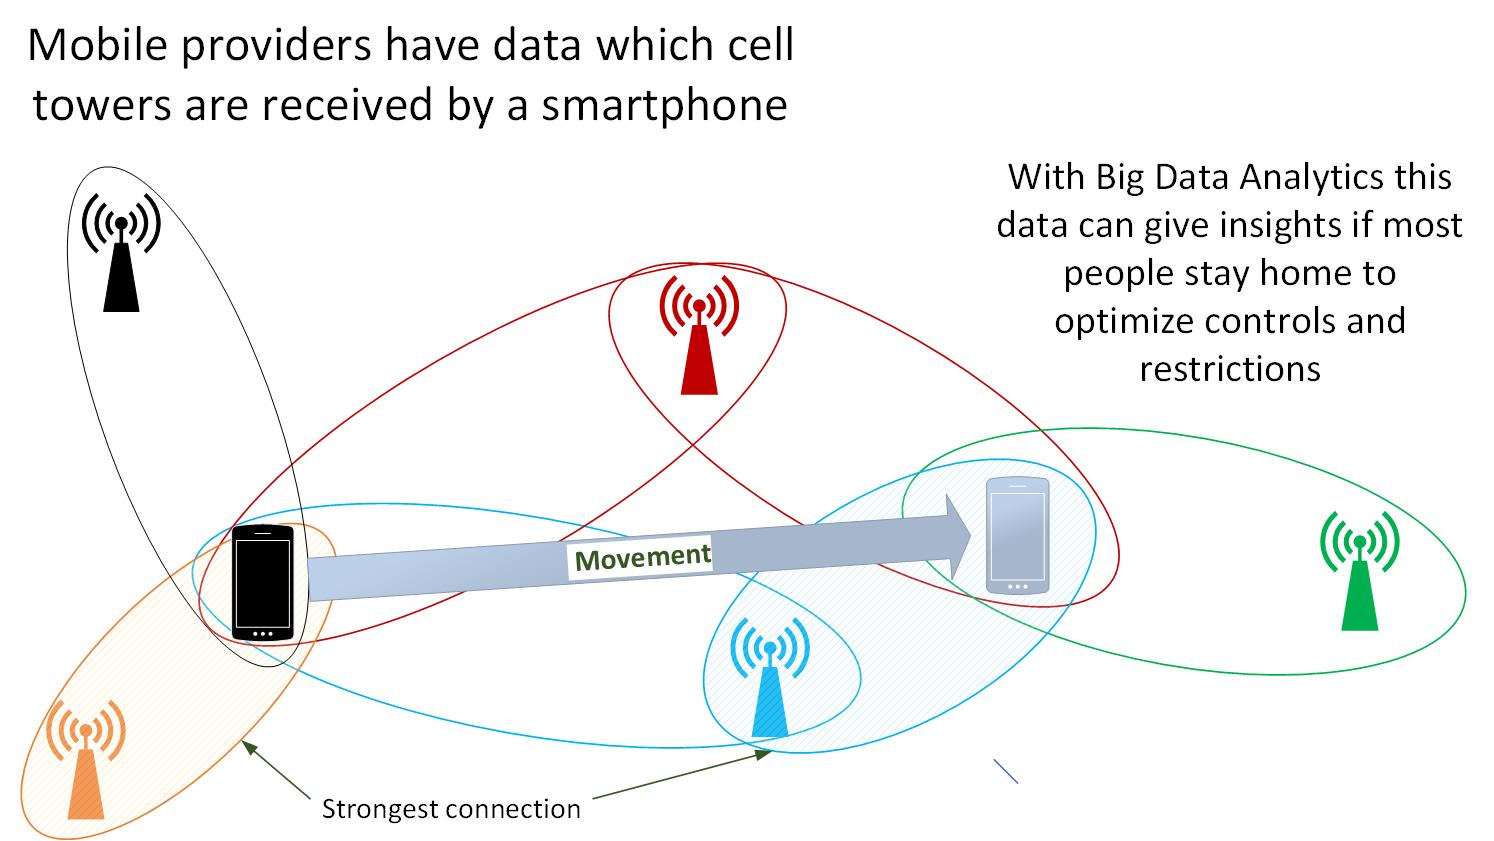 Mobile providers have data which cell towers are received by a smartphone. With Big Data Analytics this data can give insights if most people stay home to optimize controls and restrictions.